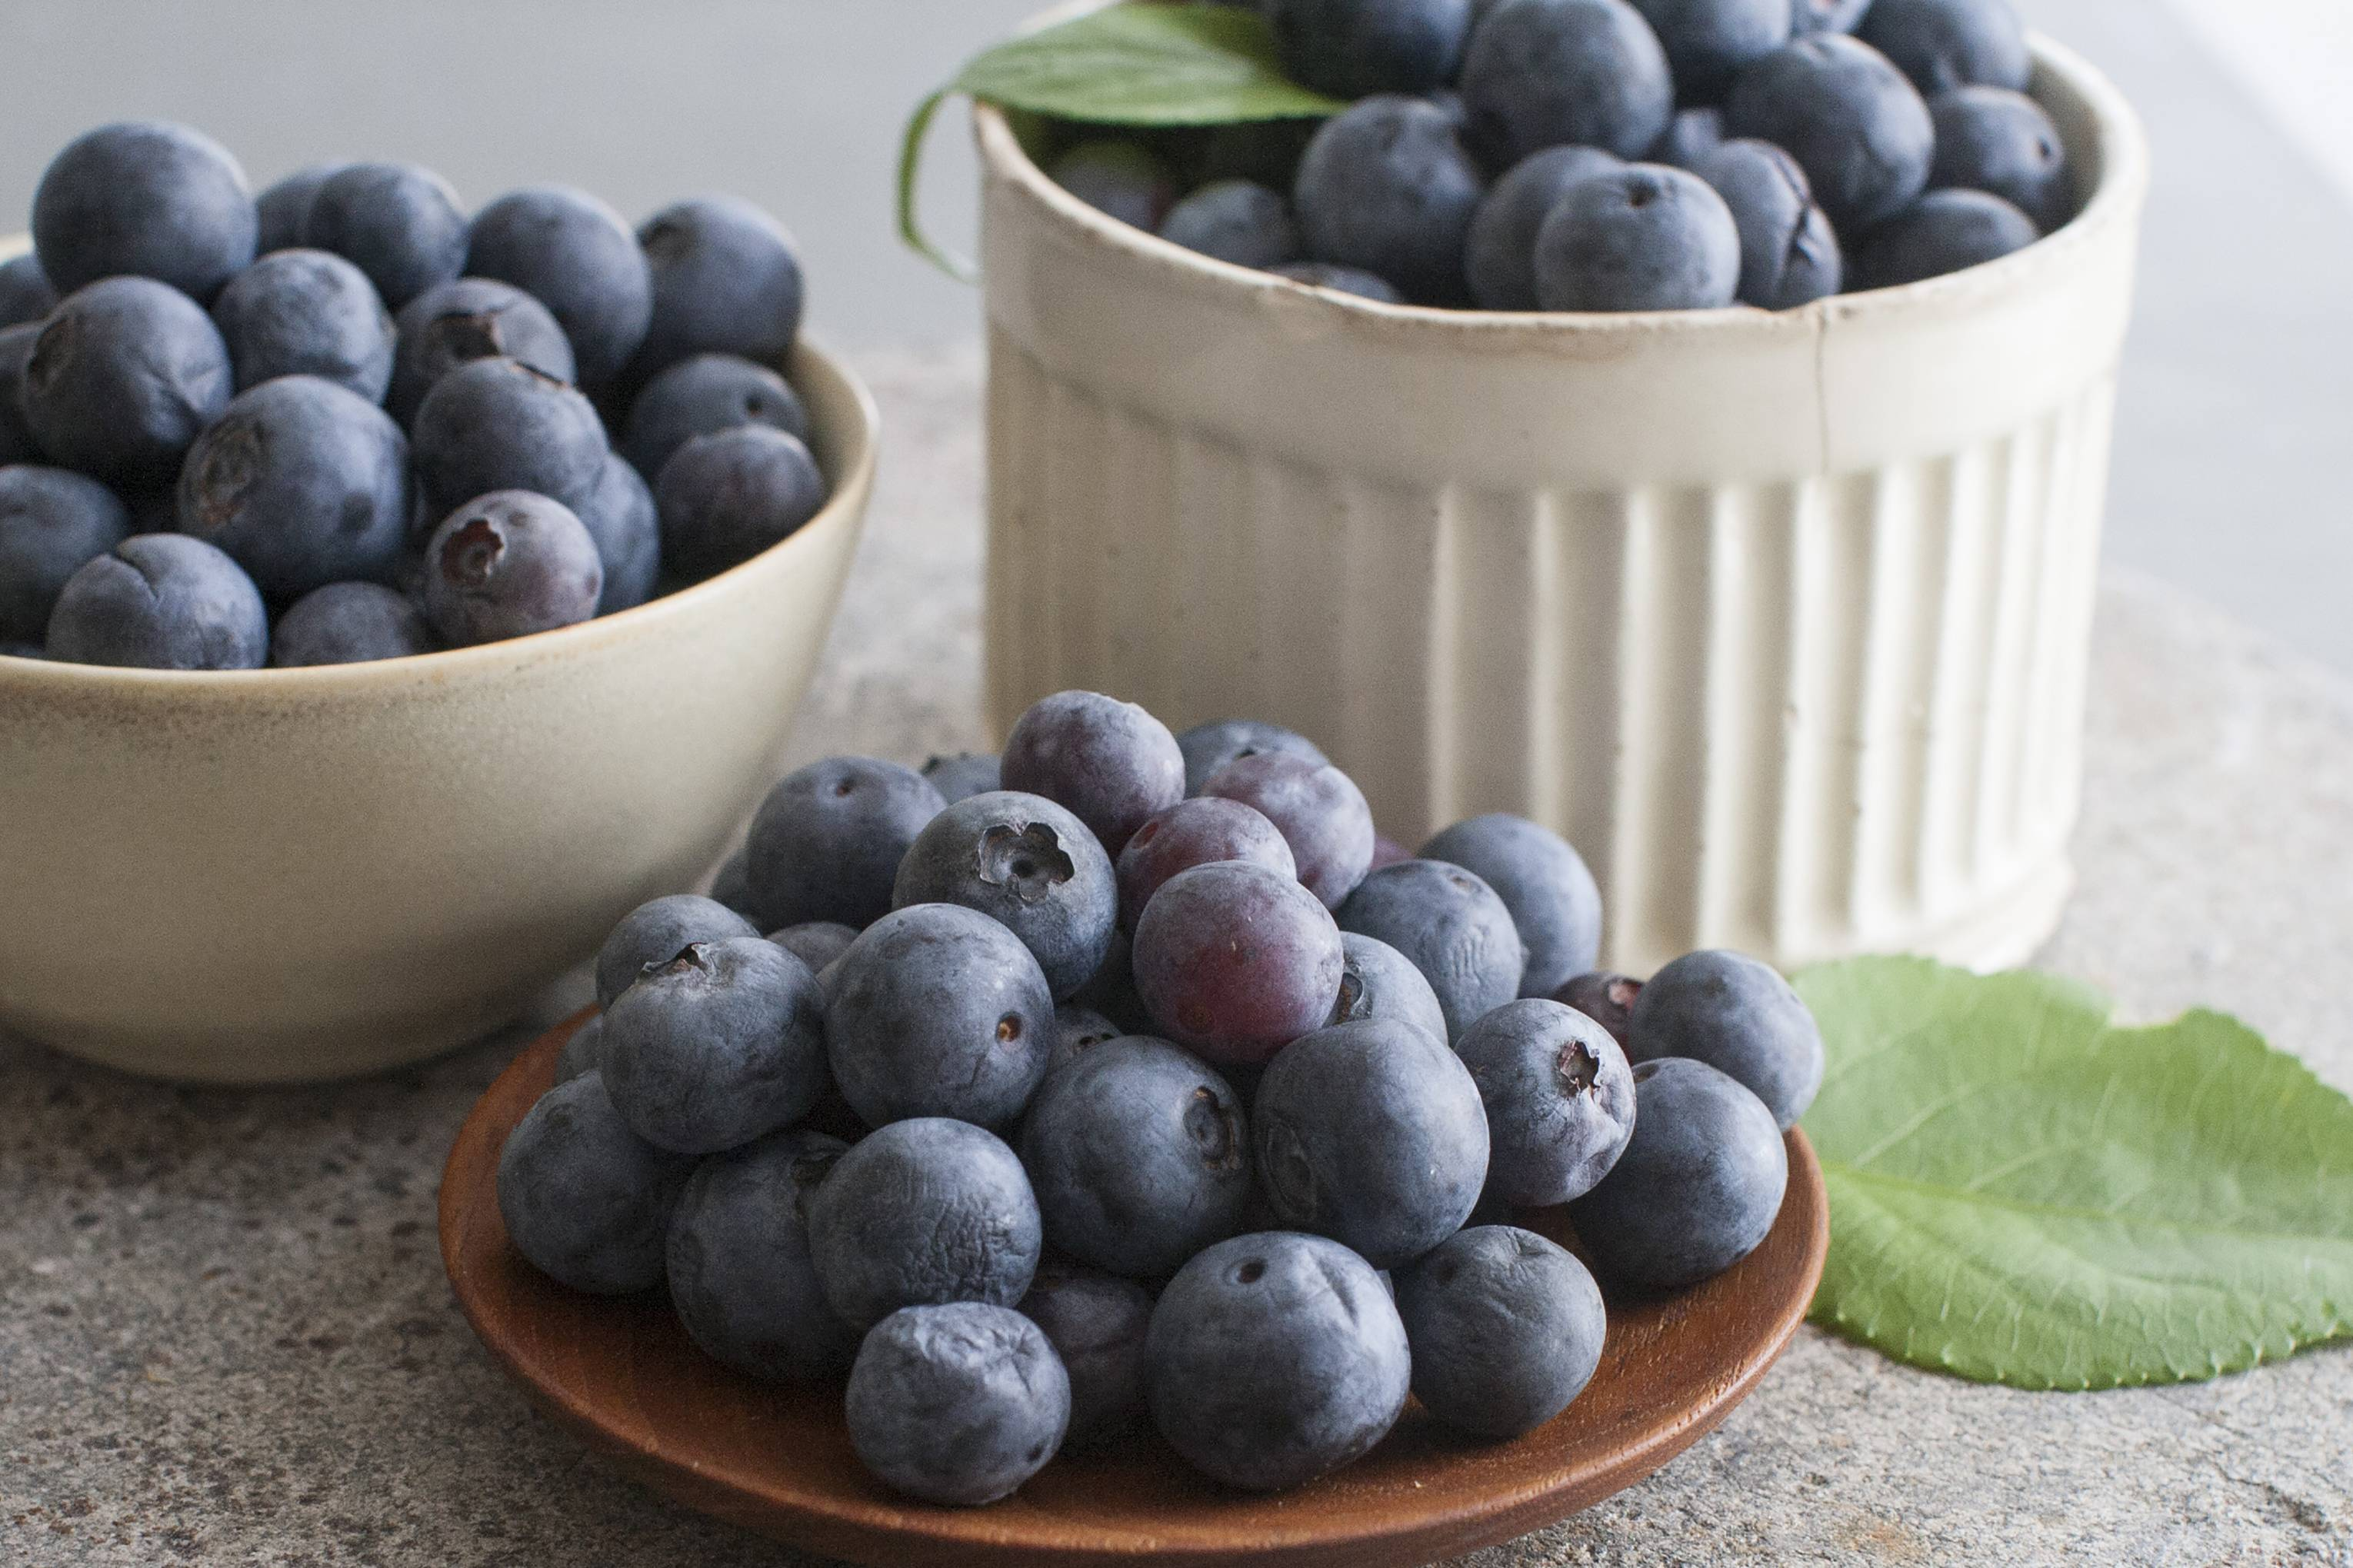 Take a fresh approach to the season's best blueberries; use them in salsa or in a sandwich spread.